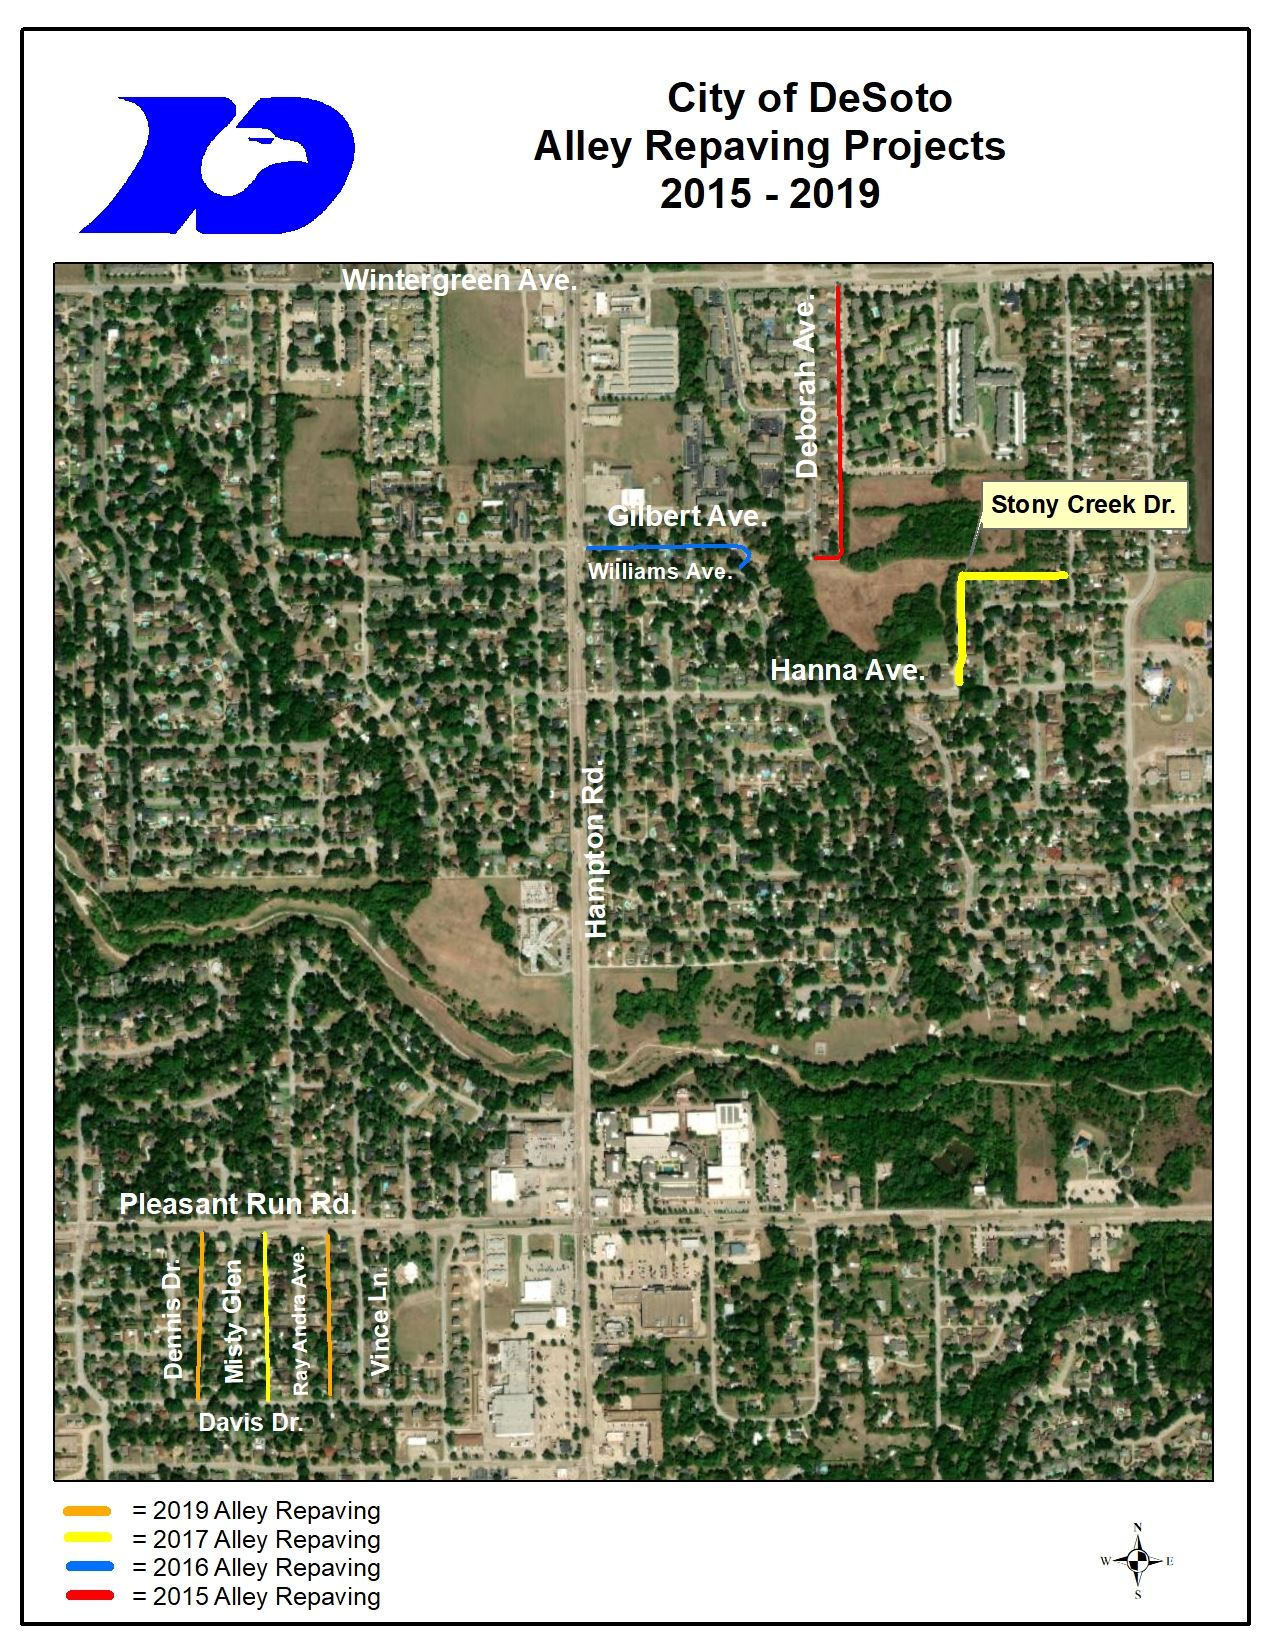 2015-2019 Alley Repaving Projects (002)